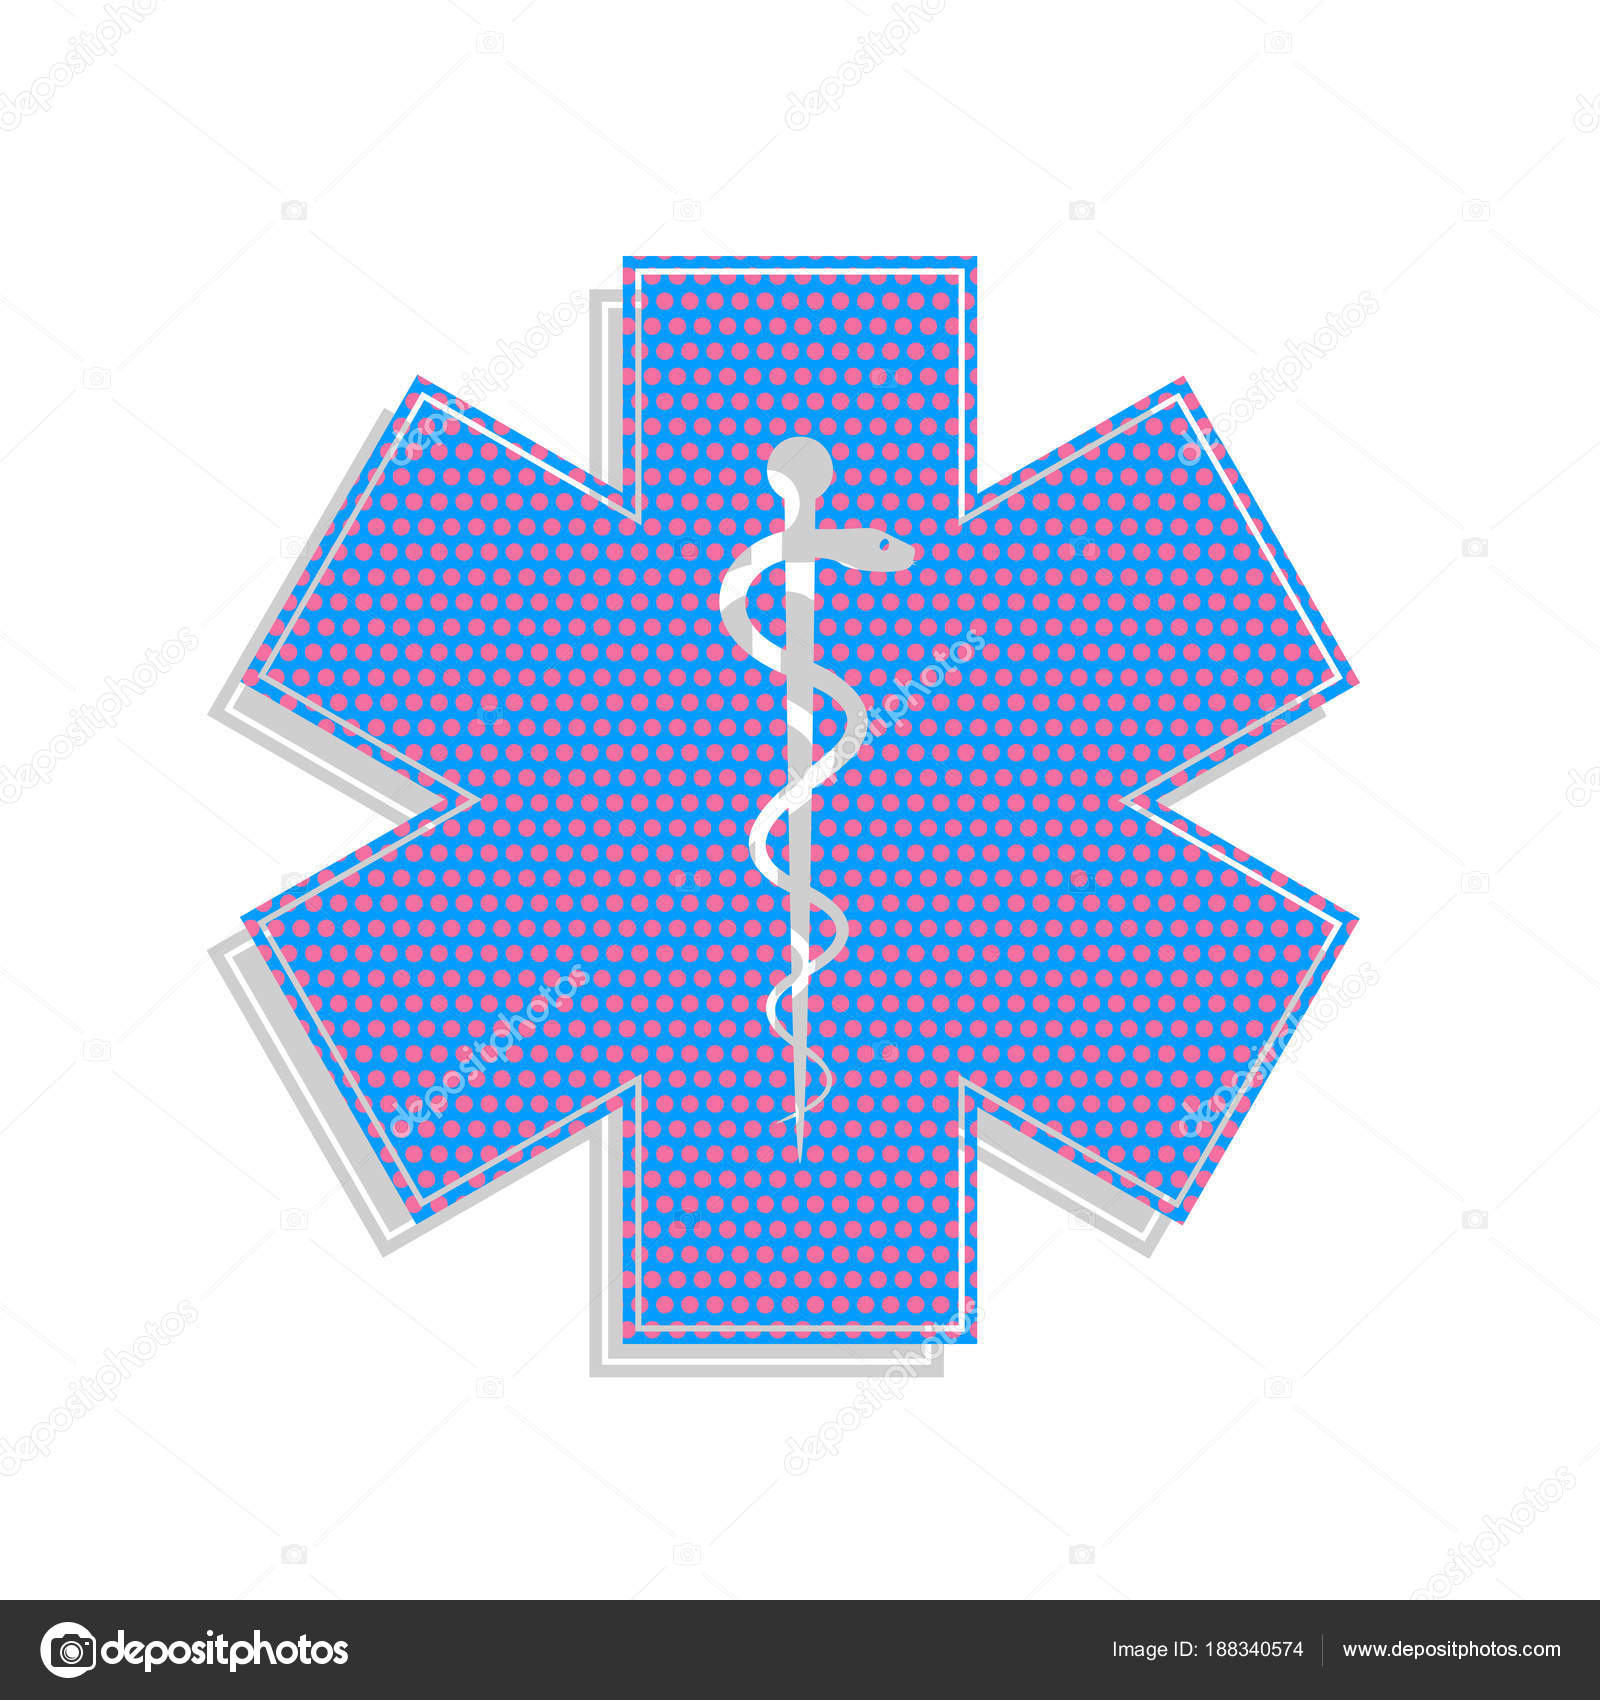 Medical Symbol Of The Emergency Or Star Of Life With Border Vec